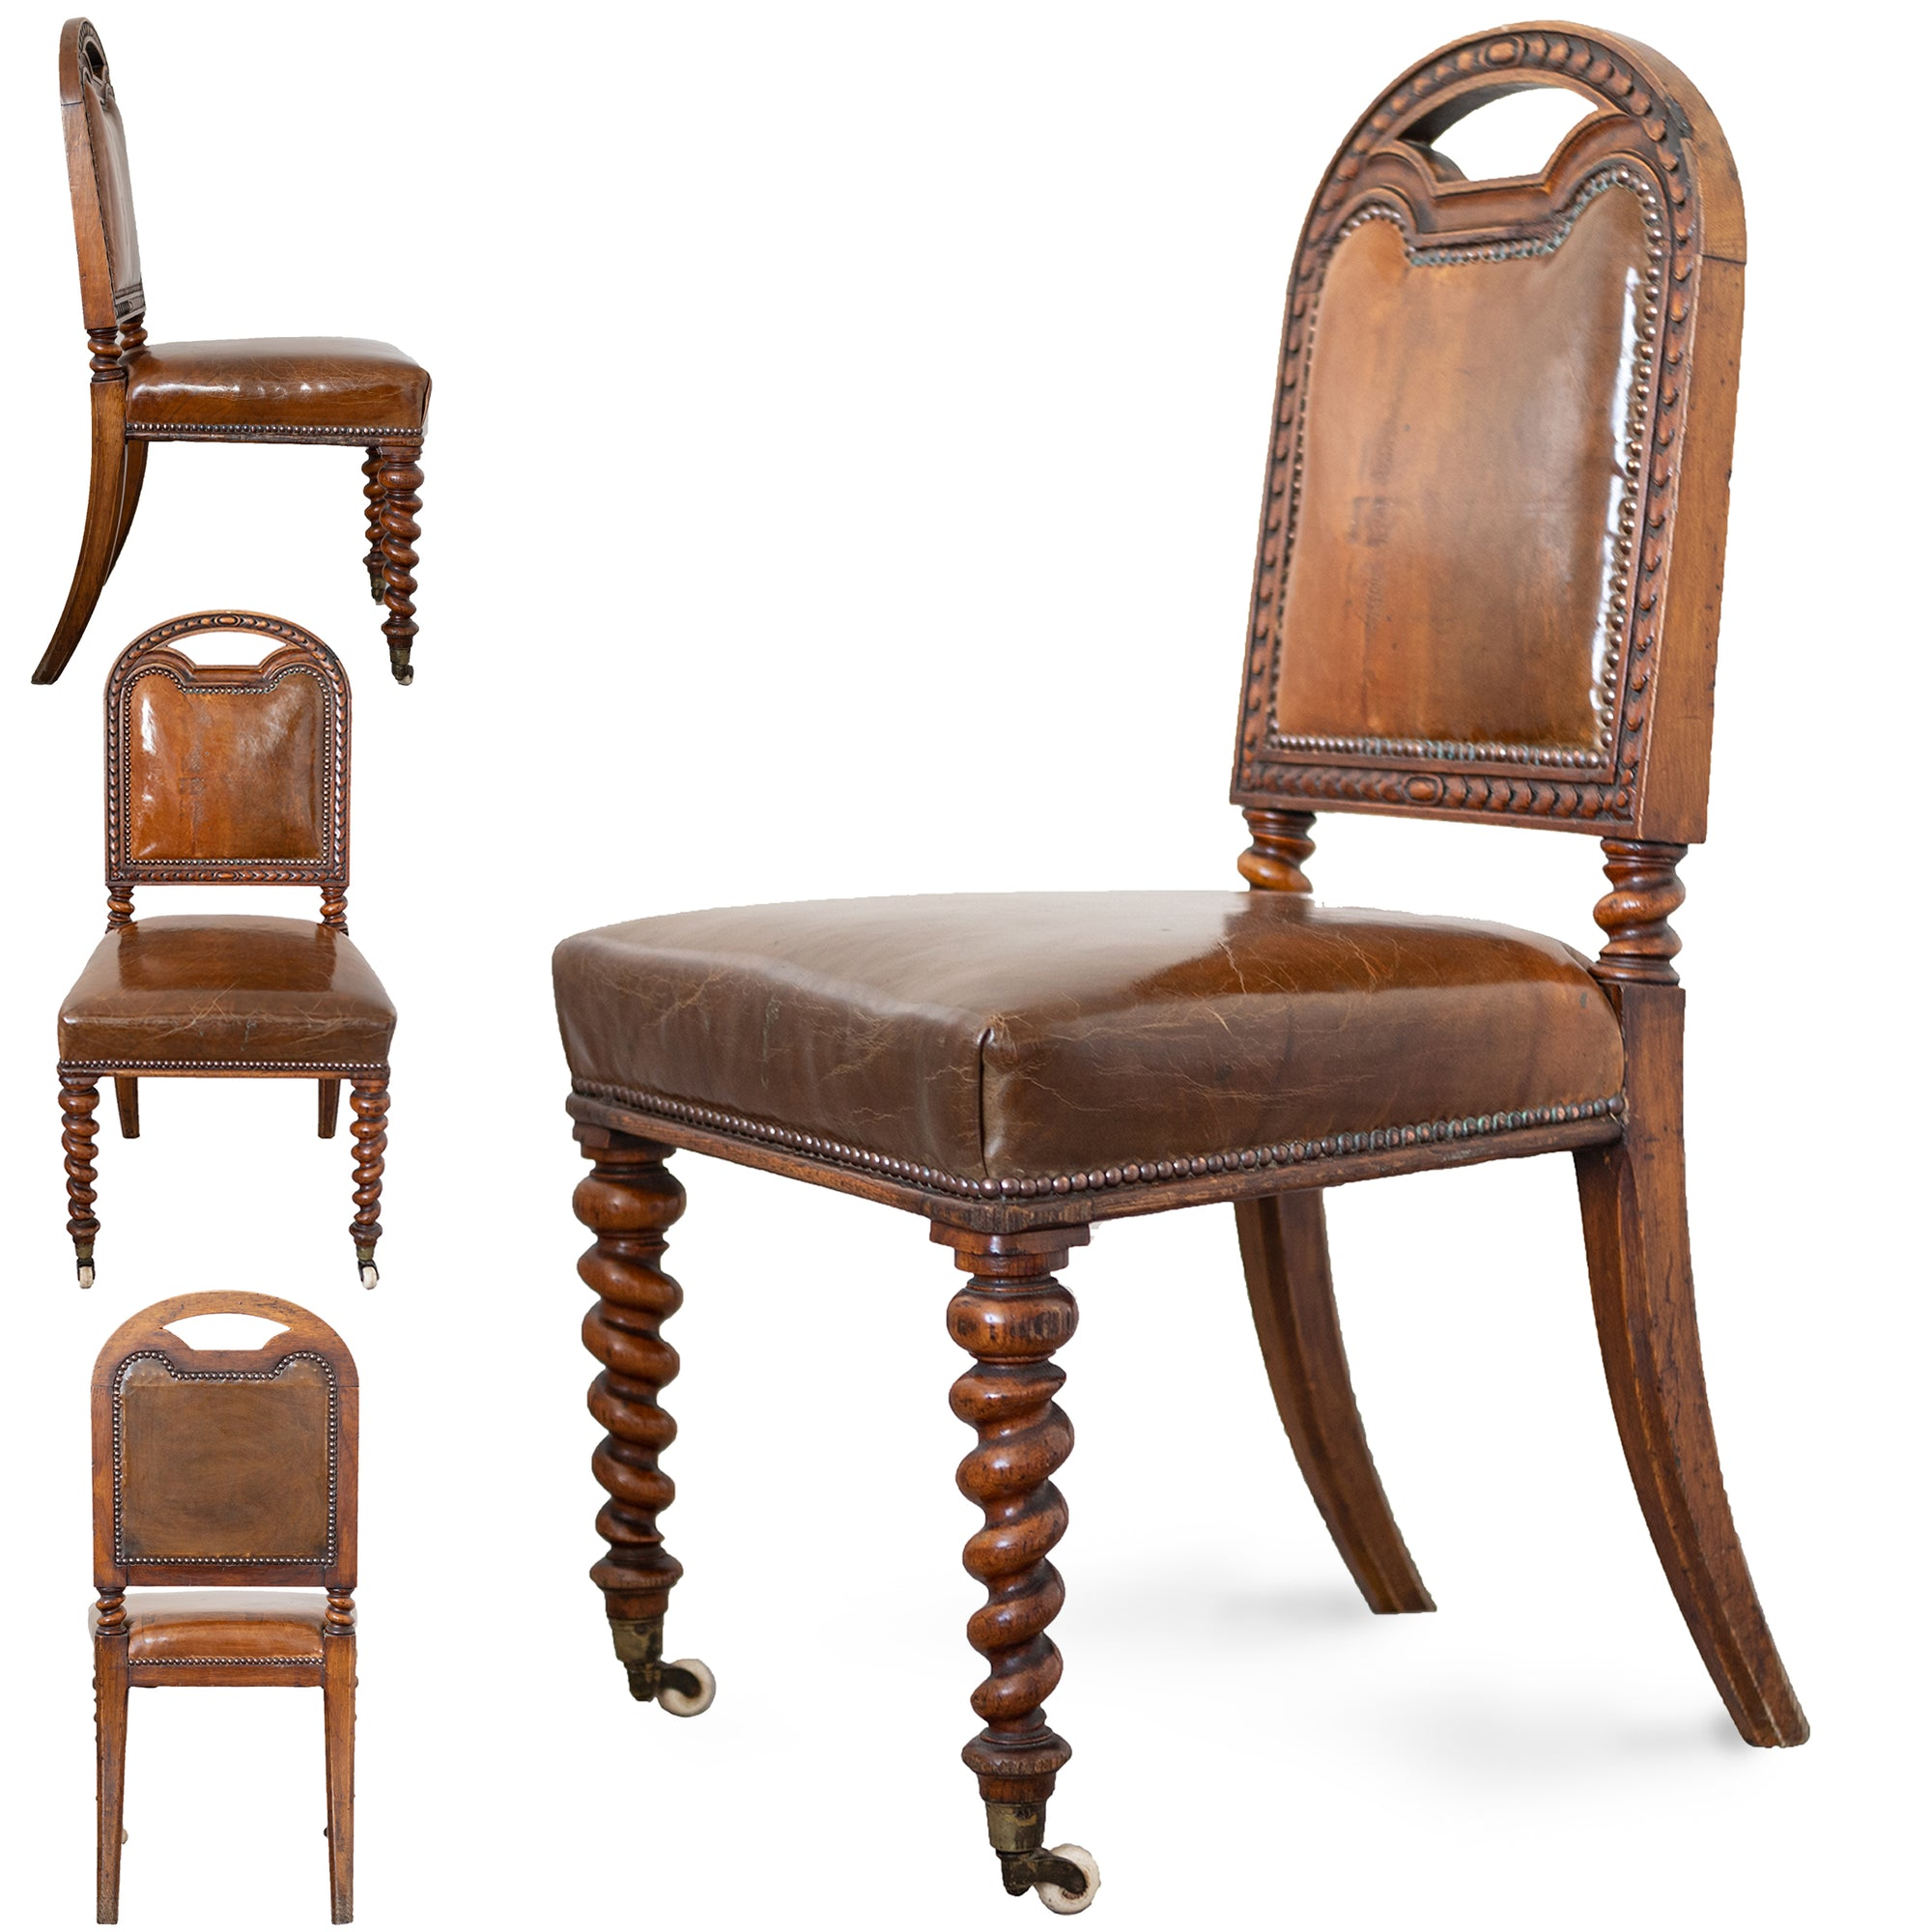 Set of 4 Antique Victorian Oak & Leather Dining Chairs with Turned Legs | The Architectural Forum